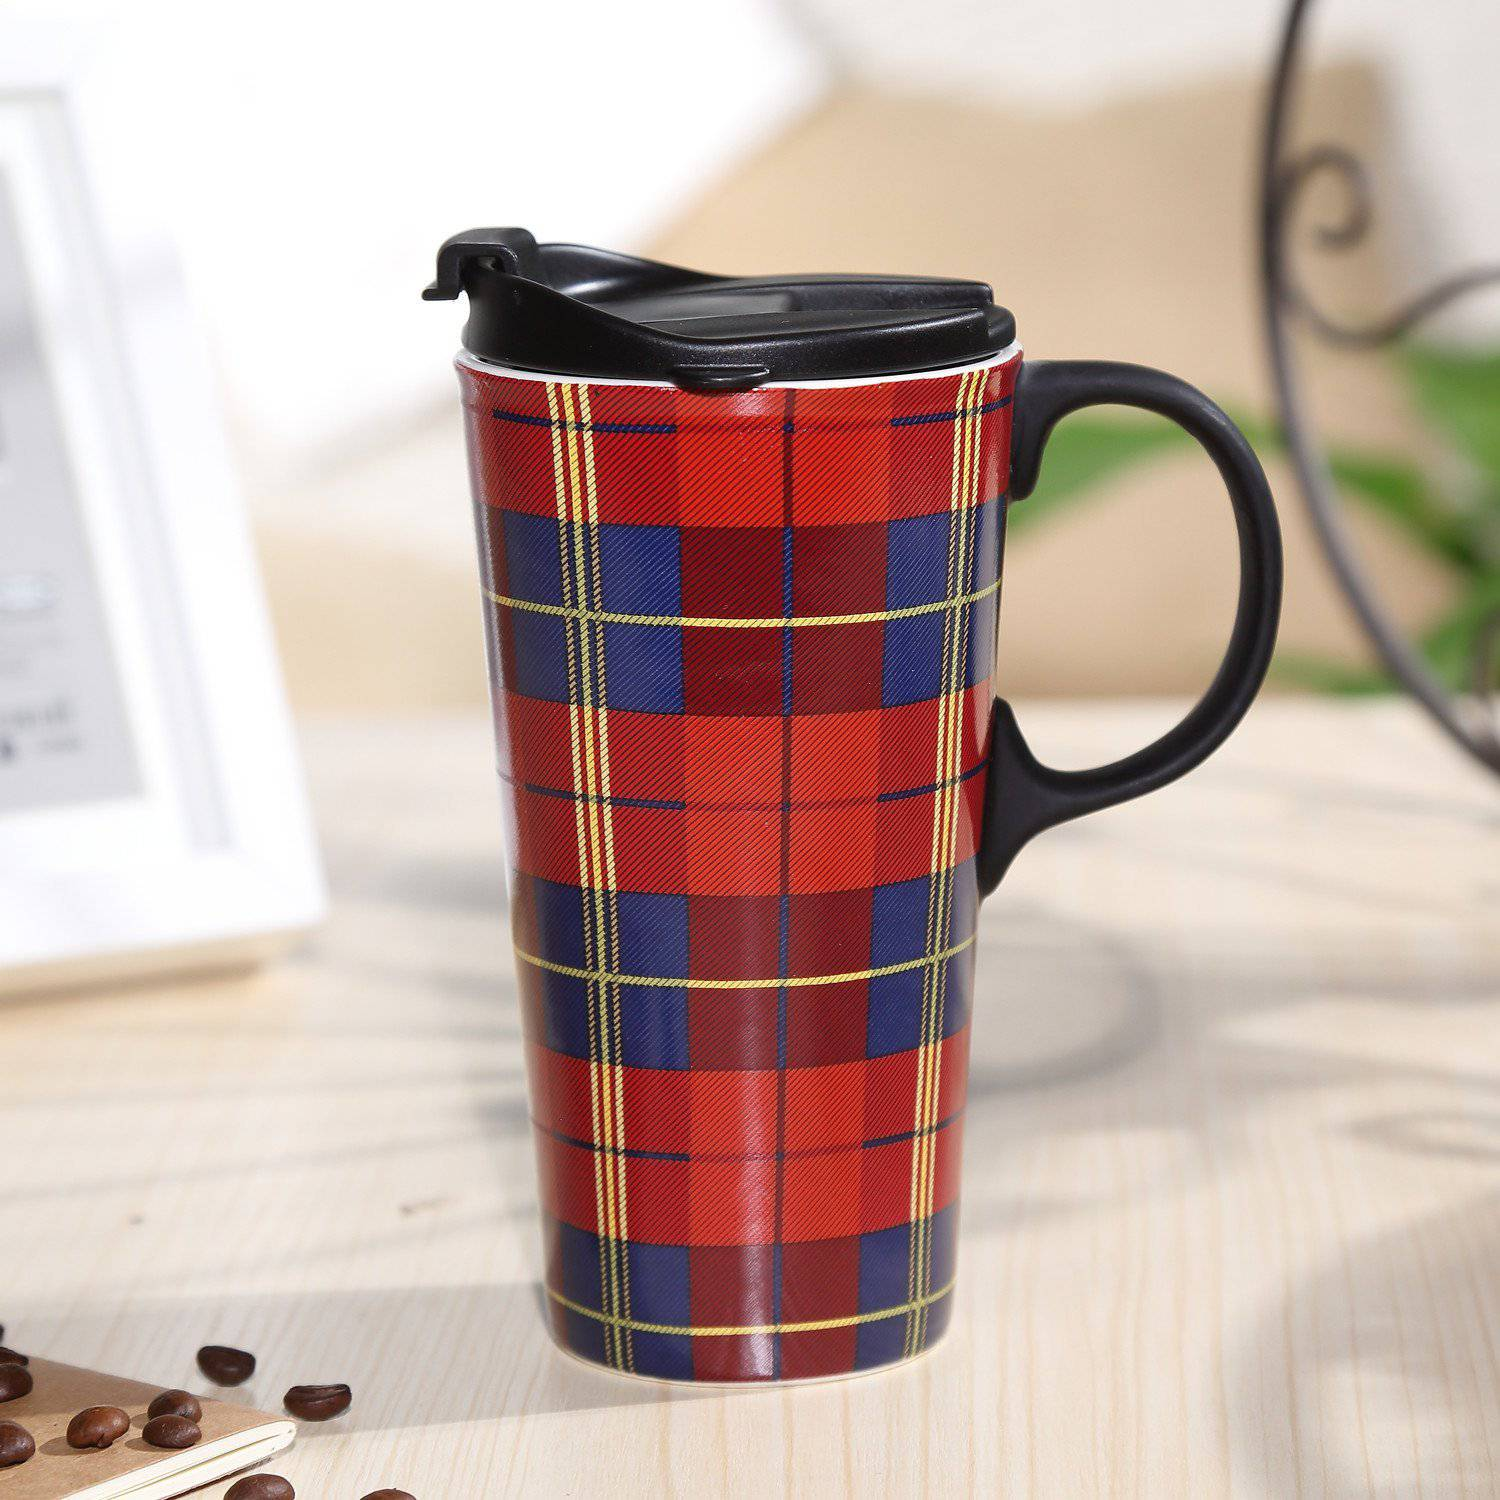 Buy Coffee Mugs Travel Coffee Ceramic Mug With Lid Gift Box Best Price Review